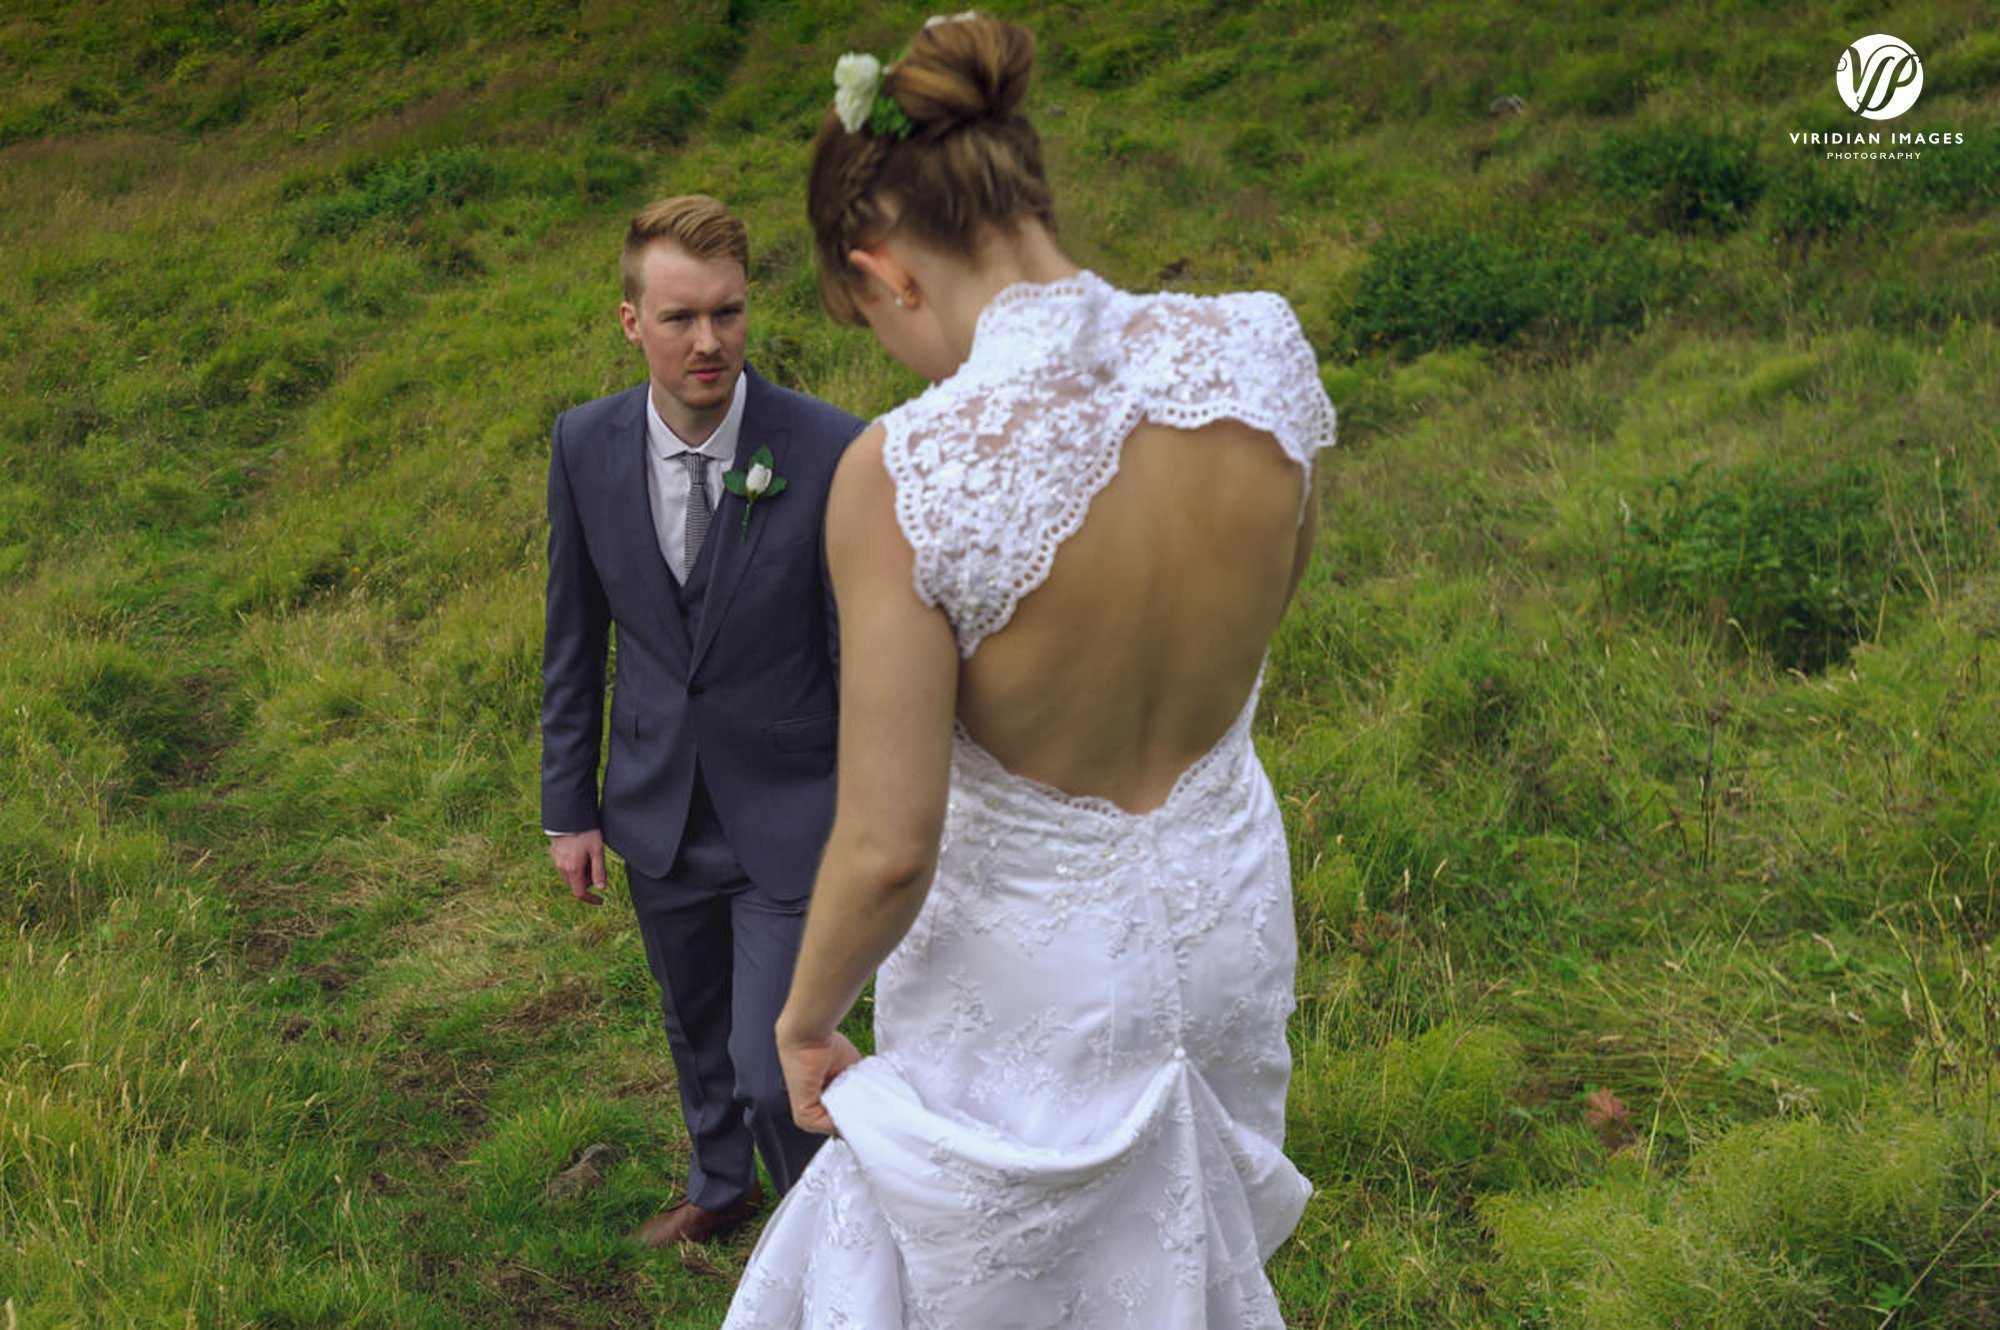 Groom looks emotionally as he helps his new bride down the mountain in Iceland